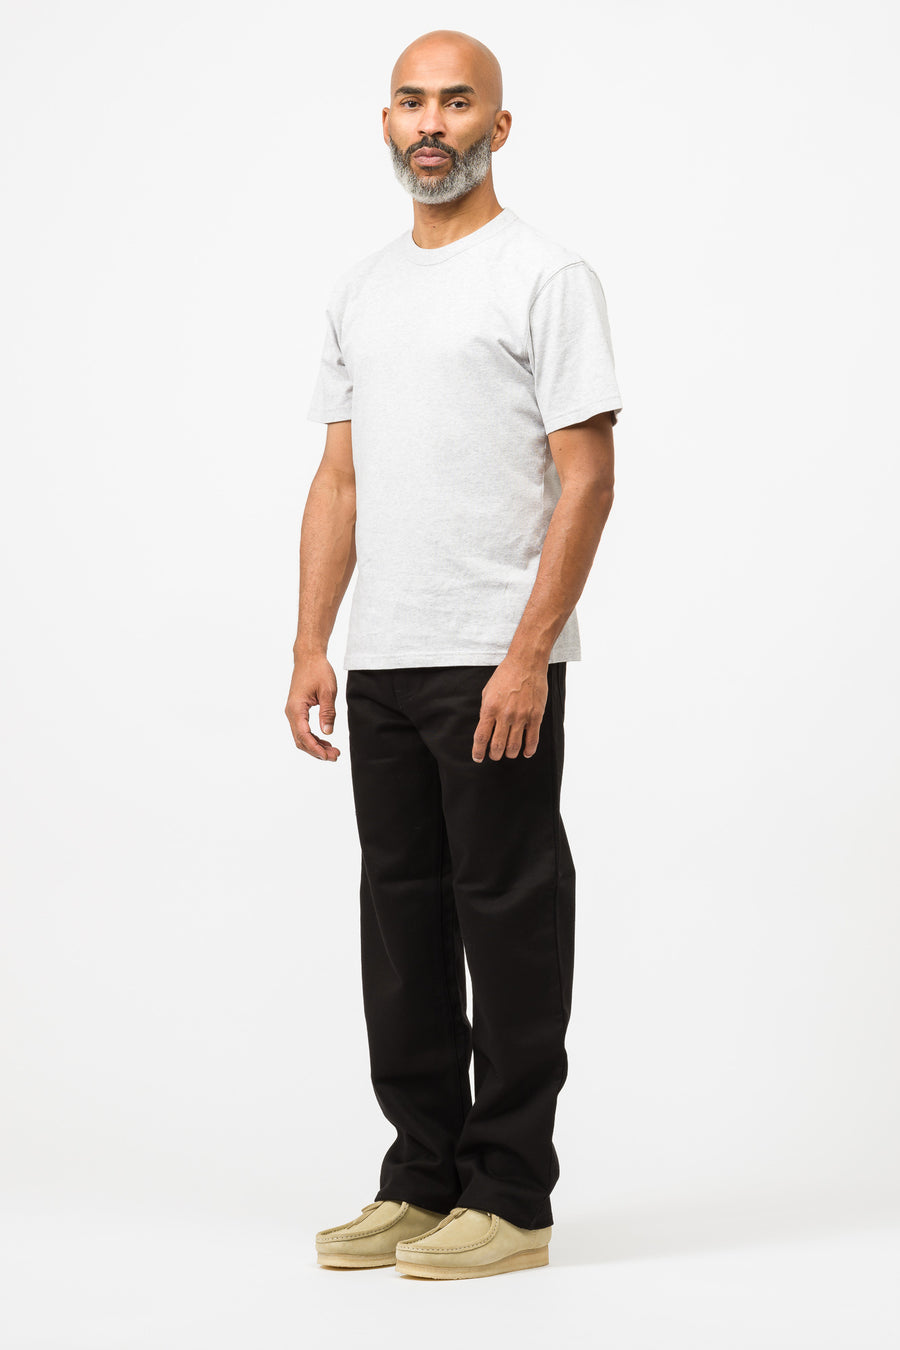 Carhartt WIP Smith Pant Jasper Twill in Black - Notre